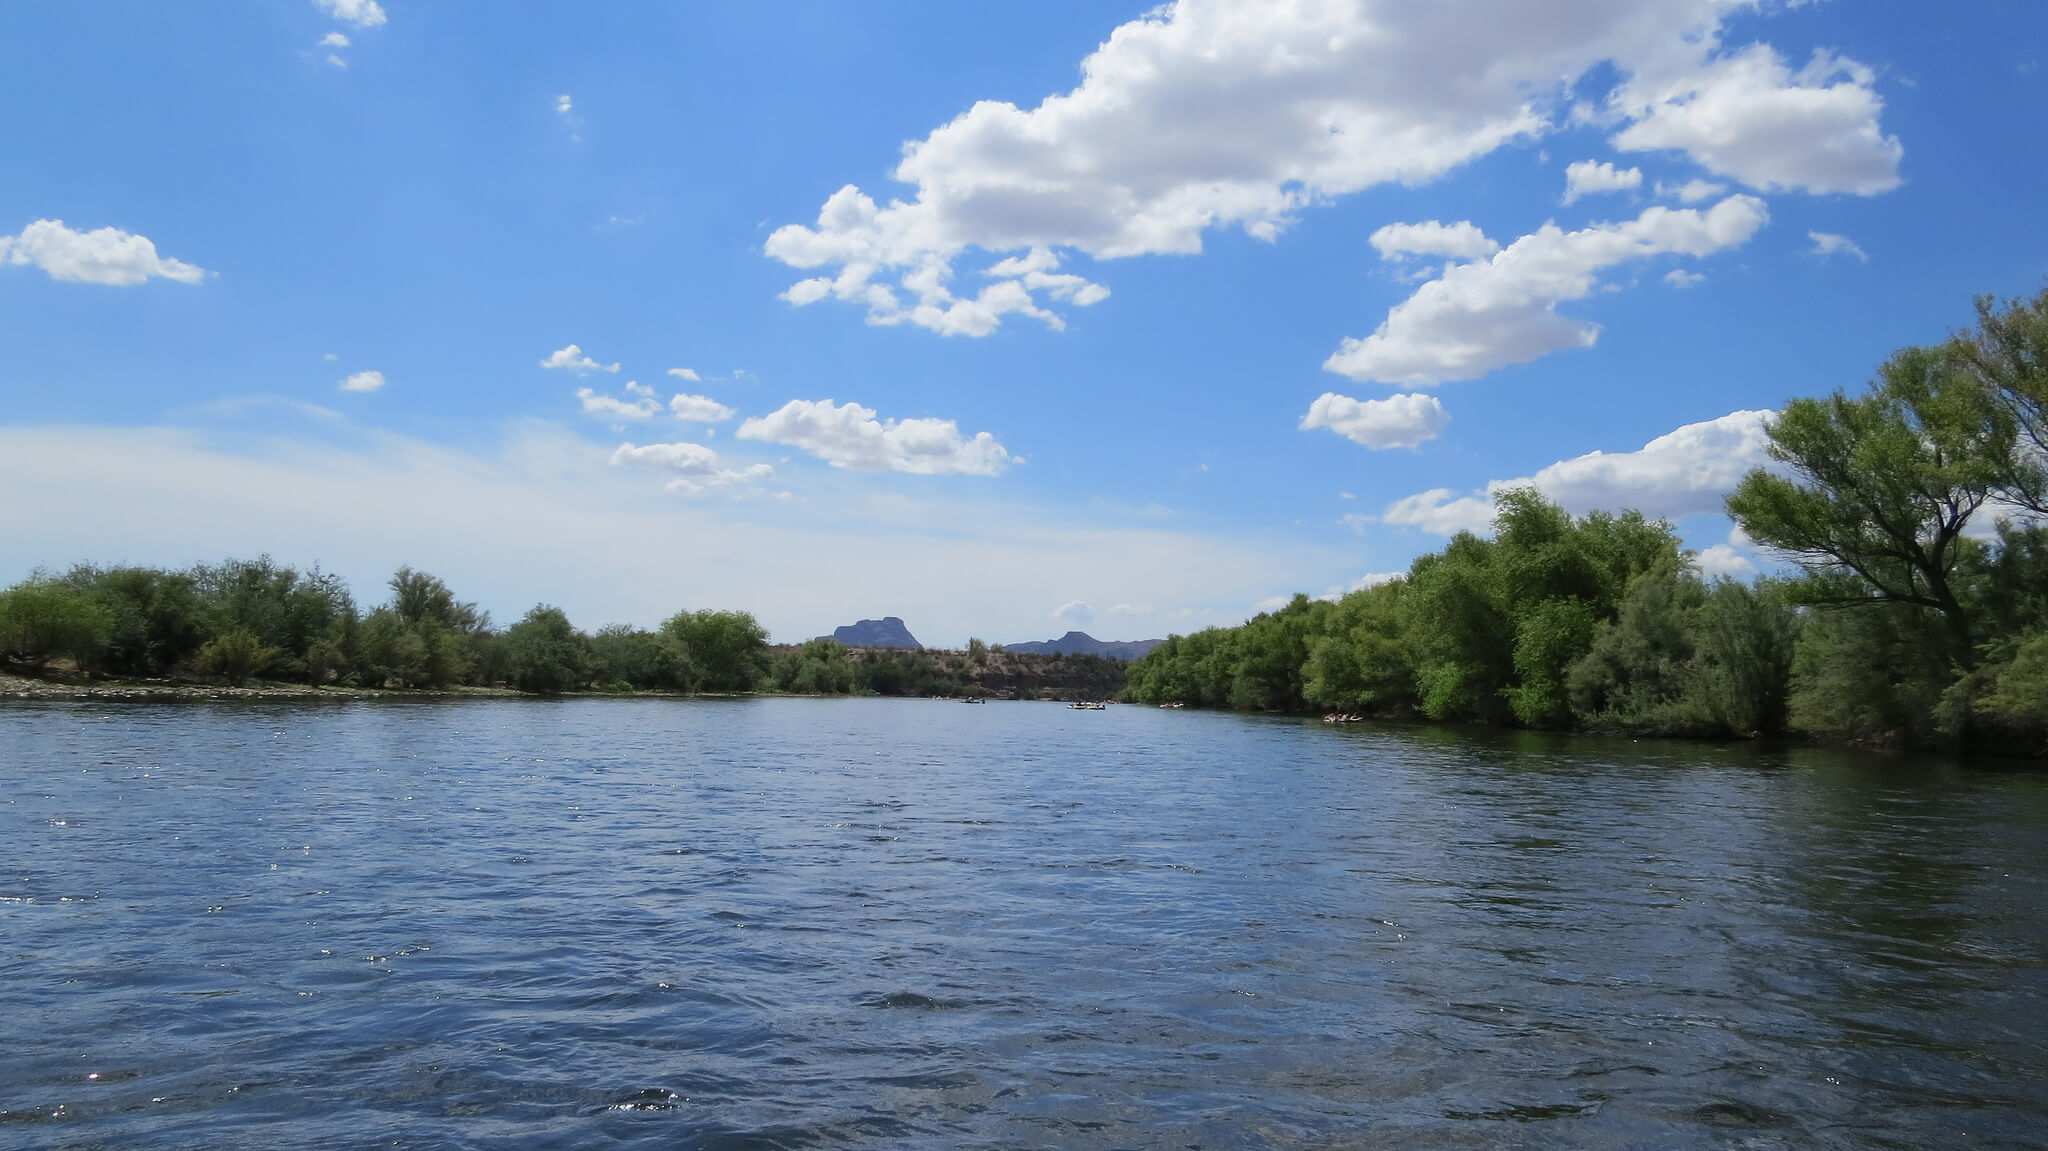 8 Beautiful Pictures of Salt River, Arizona